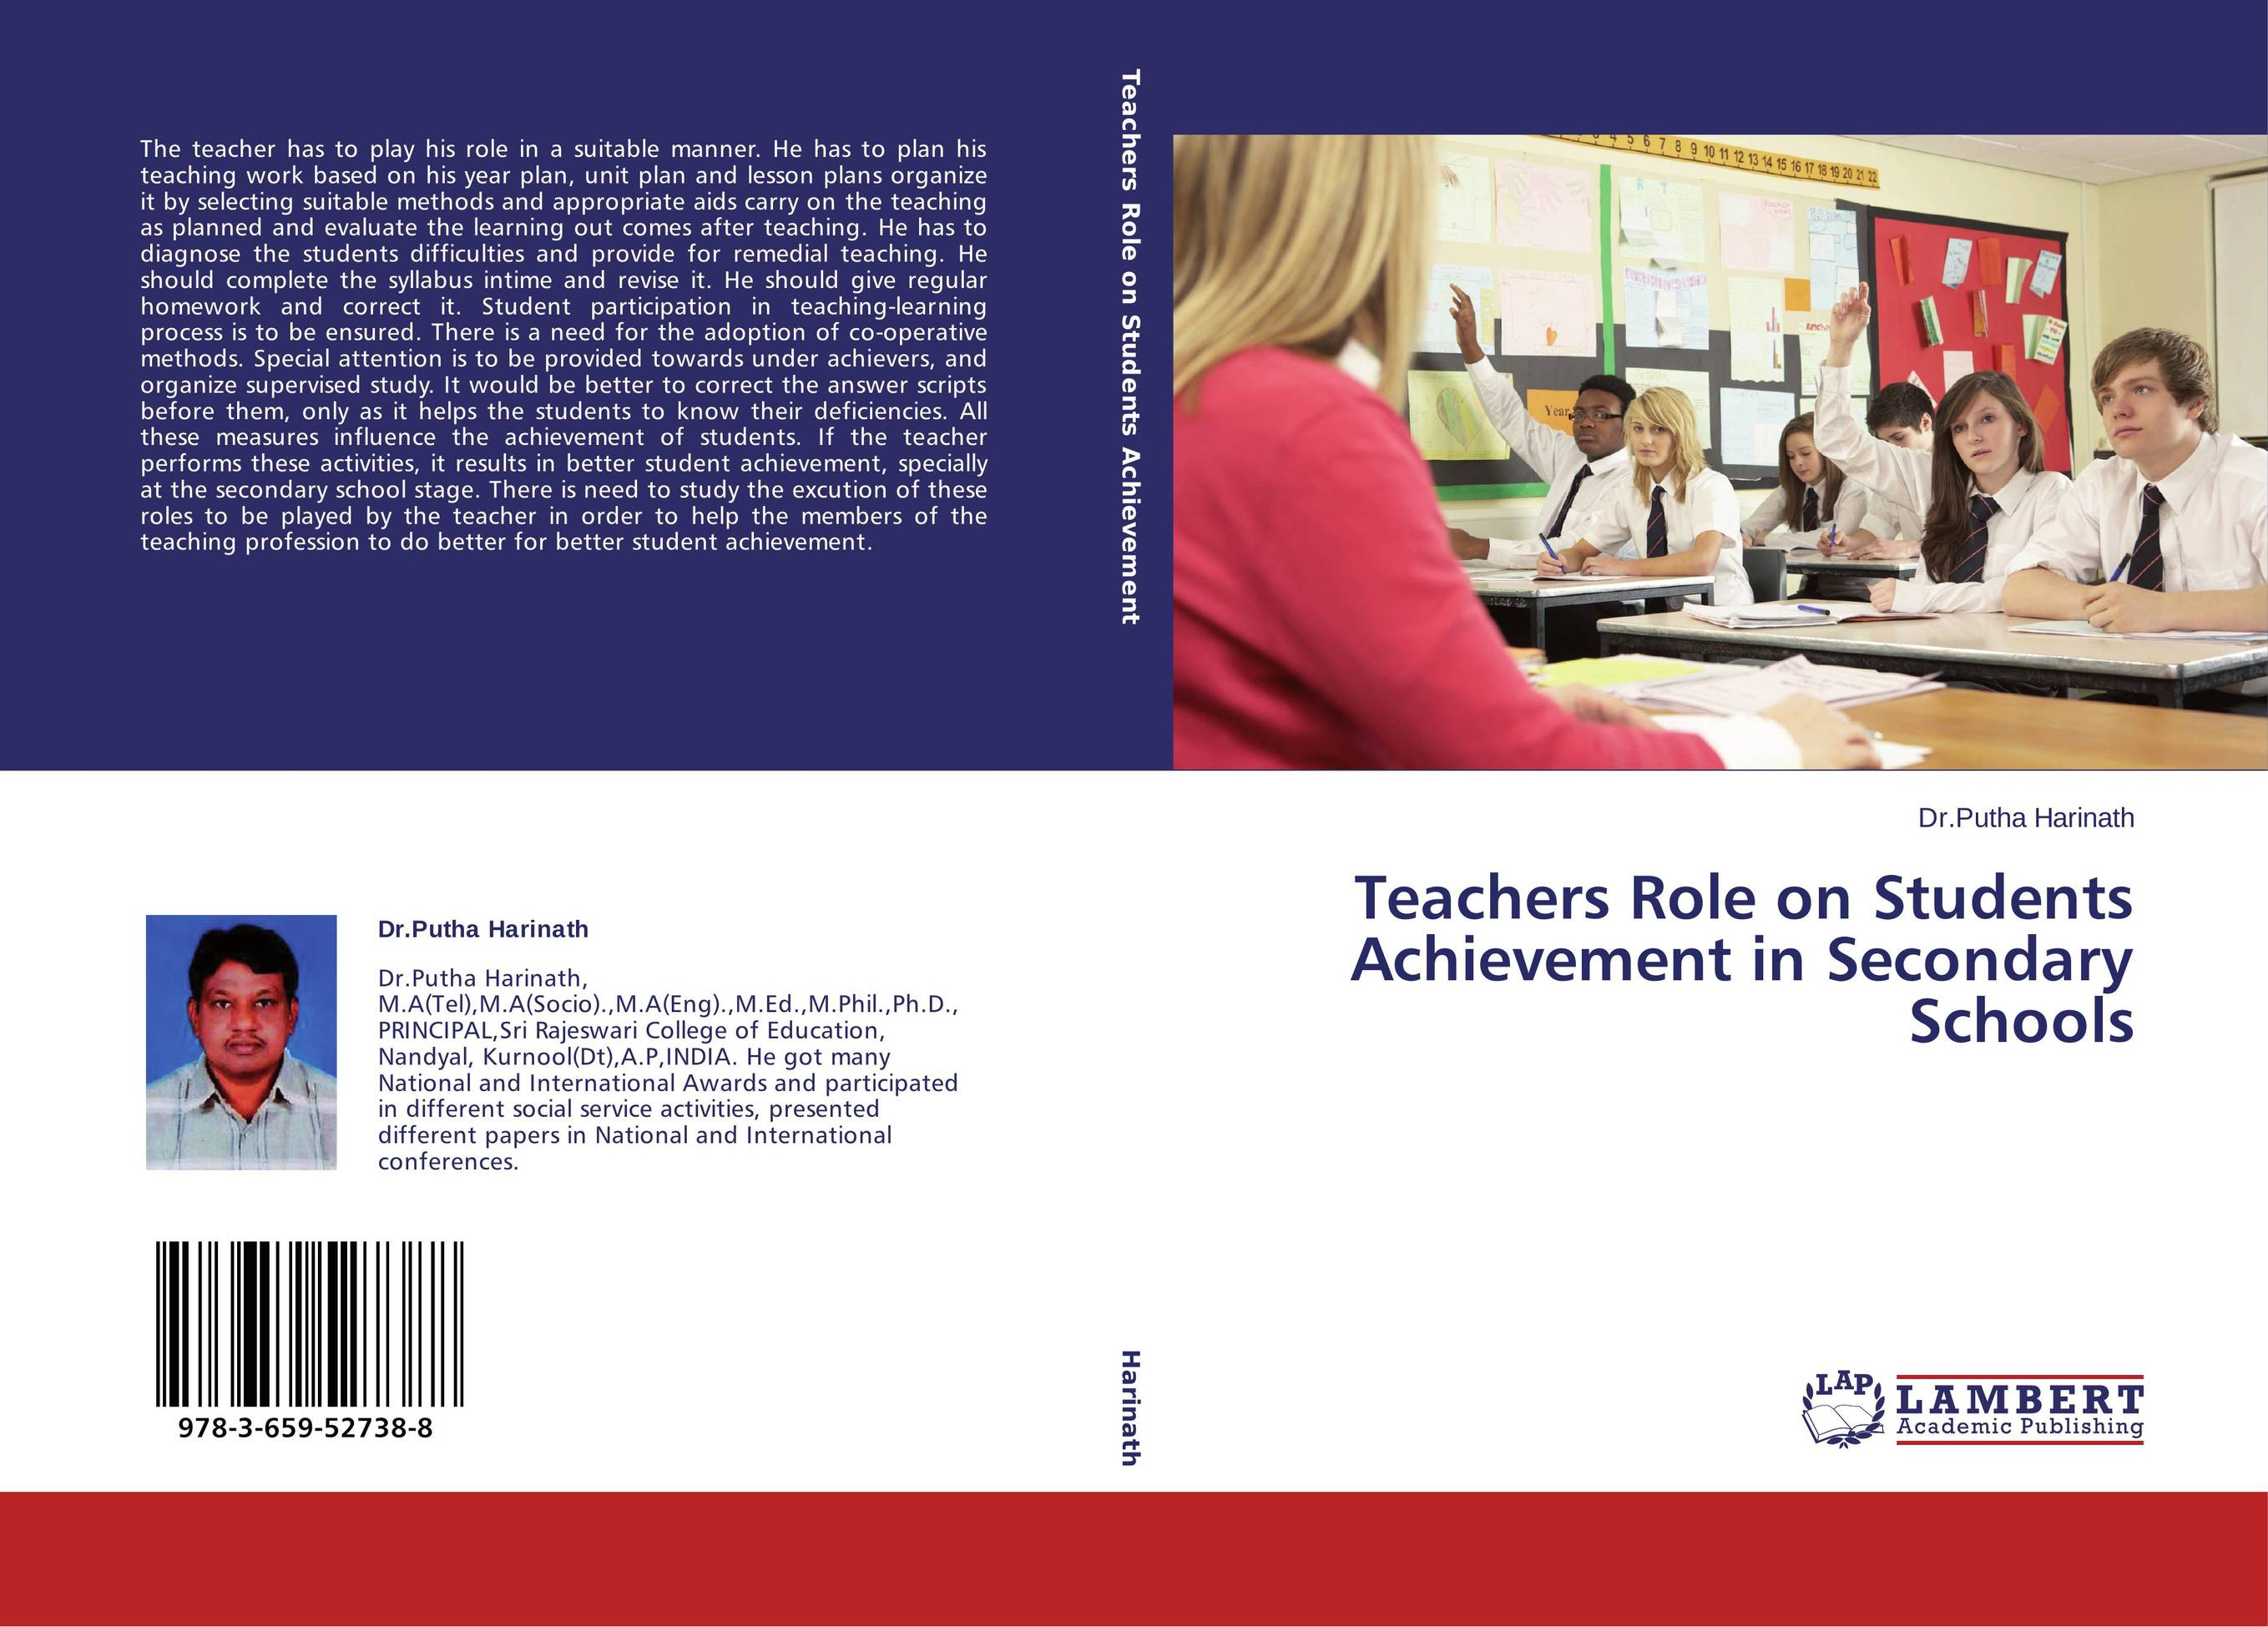 essay on role of a teacher in my life Essay on my favorite teacher | speech on my favorite teacher | paragraph on my favorite teacher | short note on my favorite teacher teachers are one of the most significant role models in everyone's life.